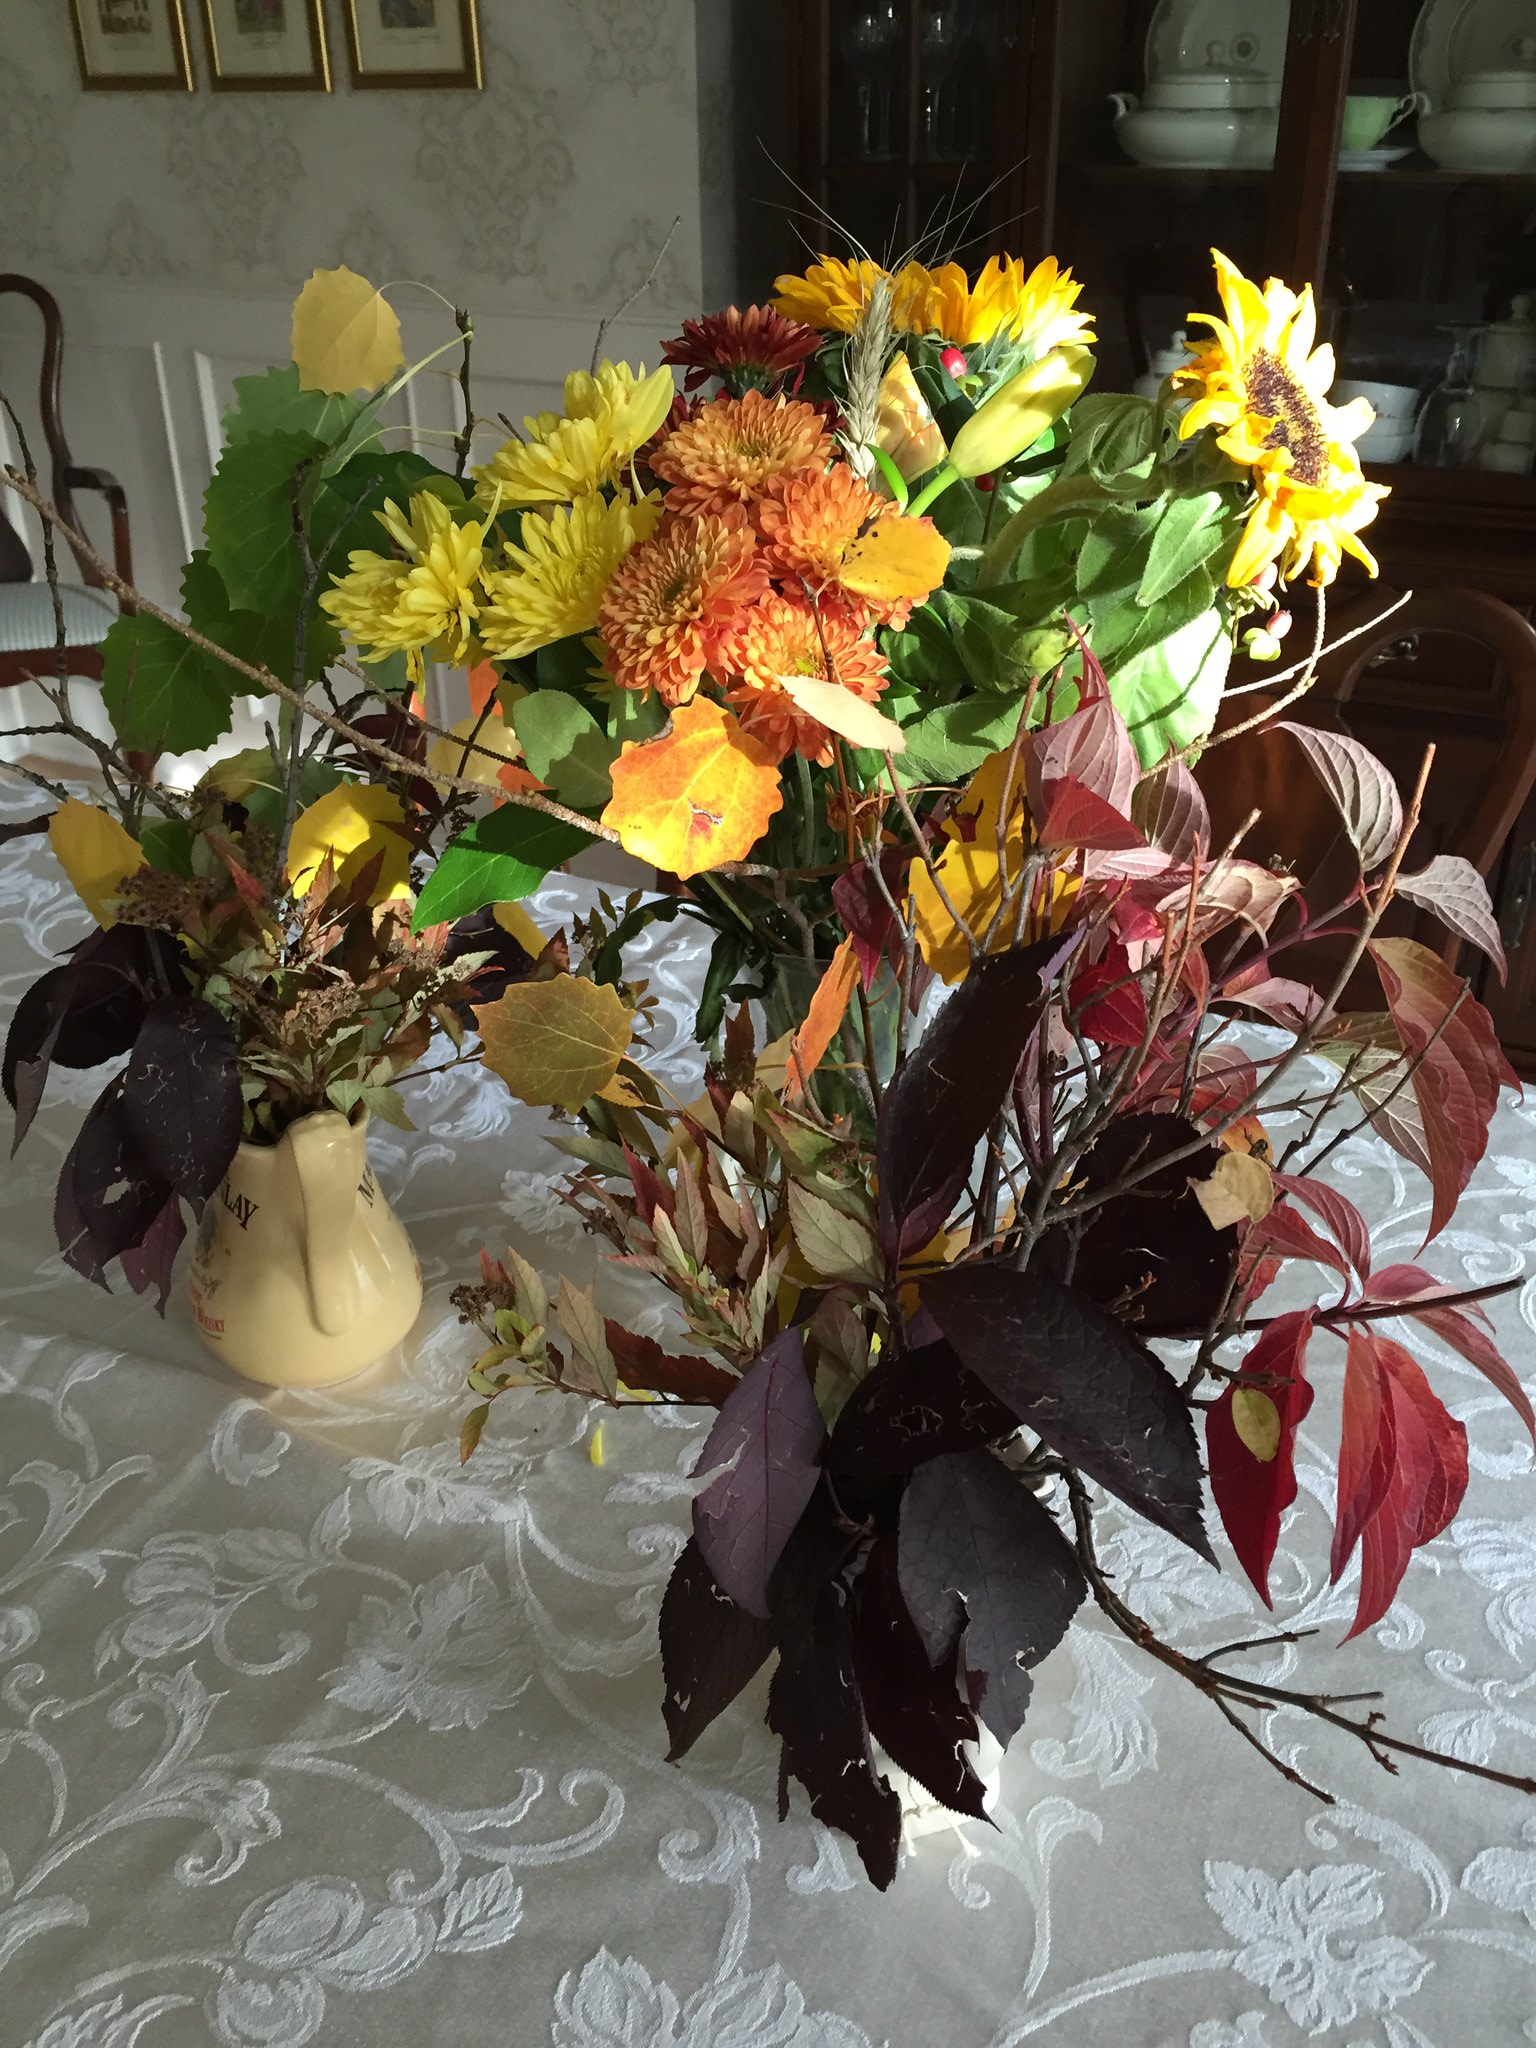 Autumn floral arrangement with added twigs and leaves